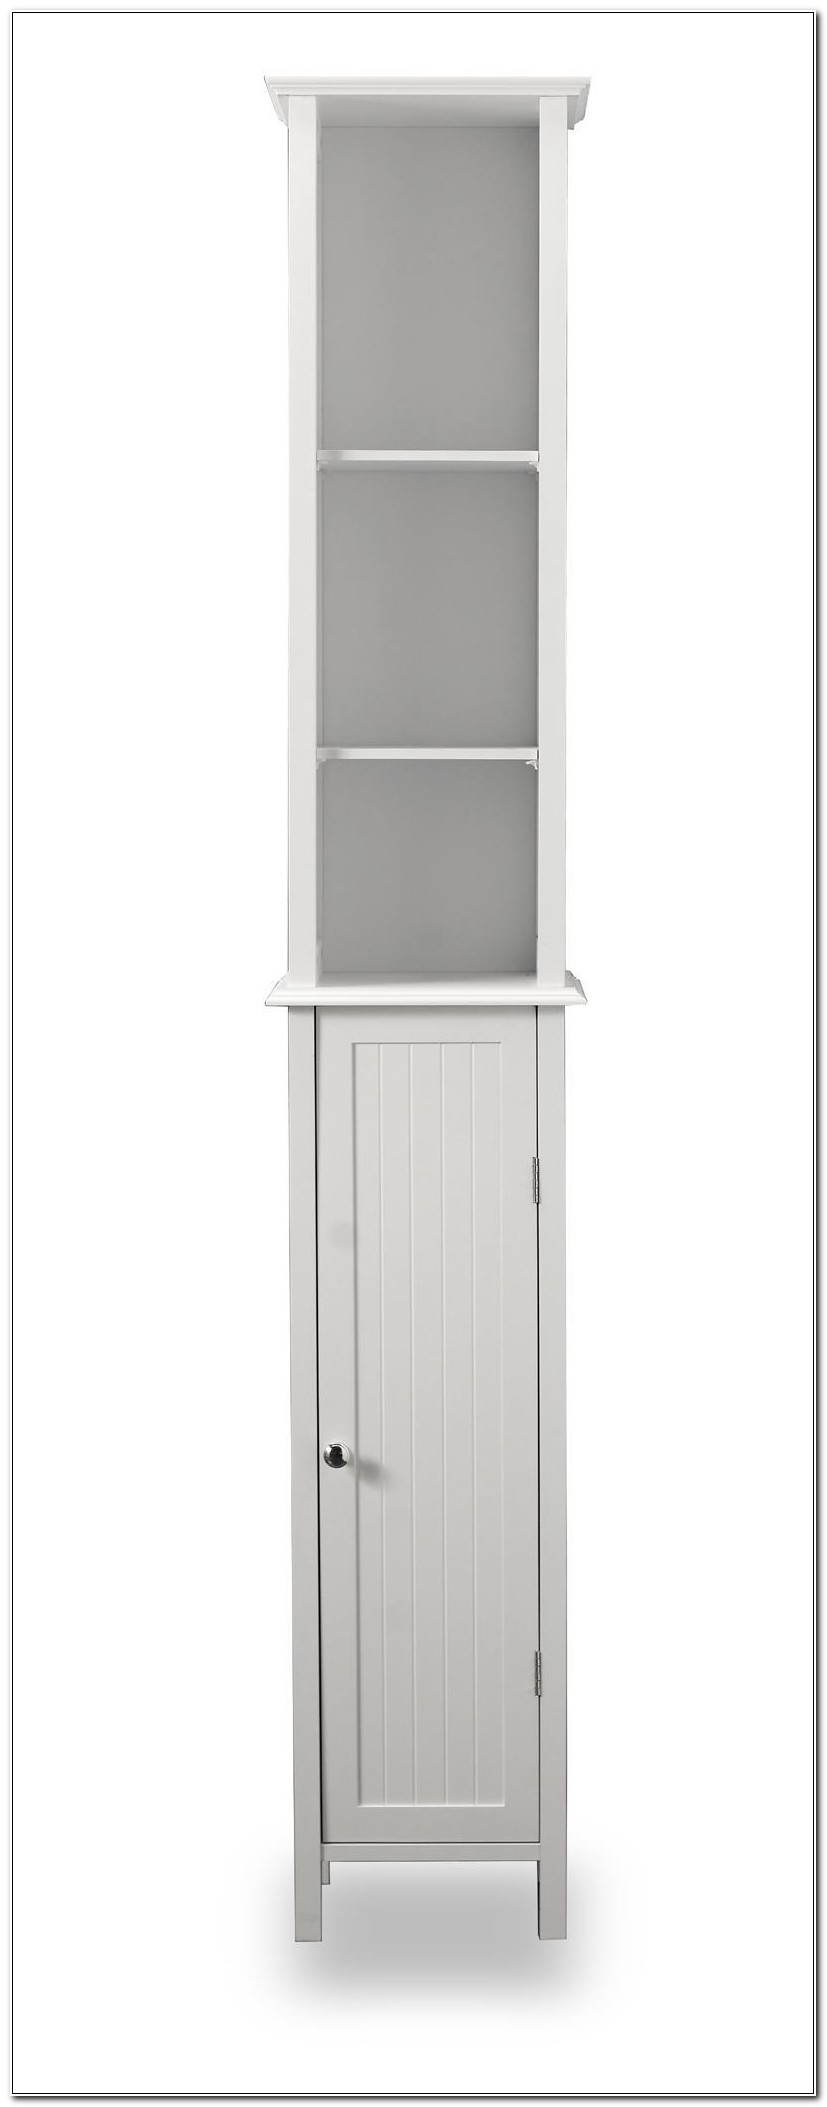 Tall White Shaker Style Bathroom Cabinet Freestanding